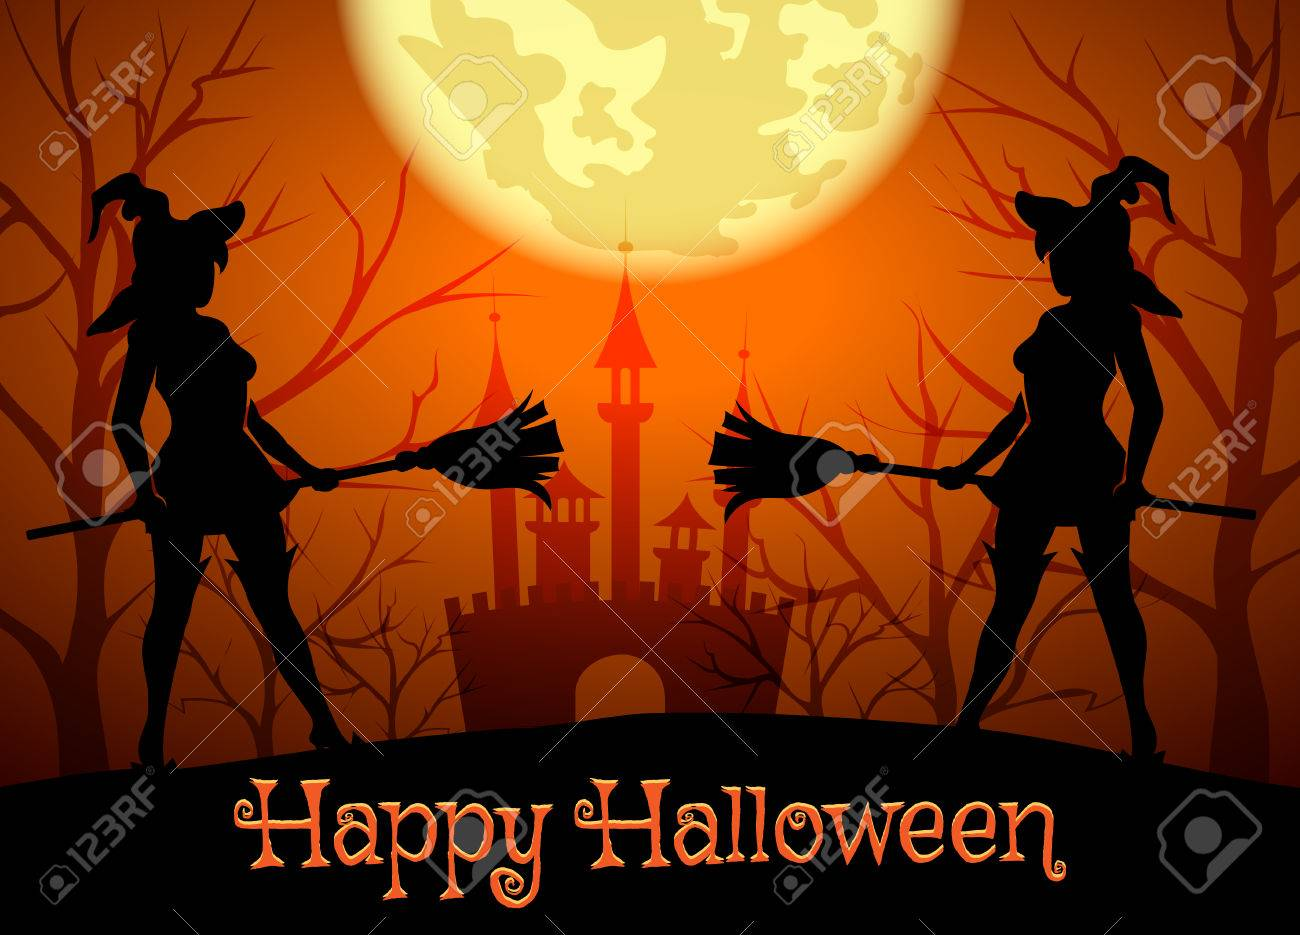 Halloween Background With Silhouettes Of Witches And Lettering ...